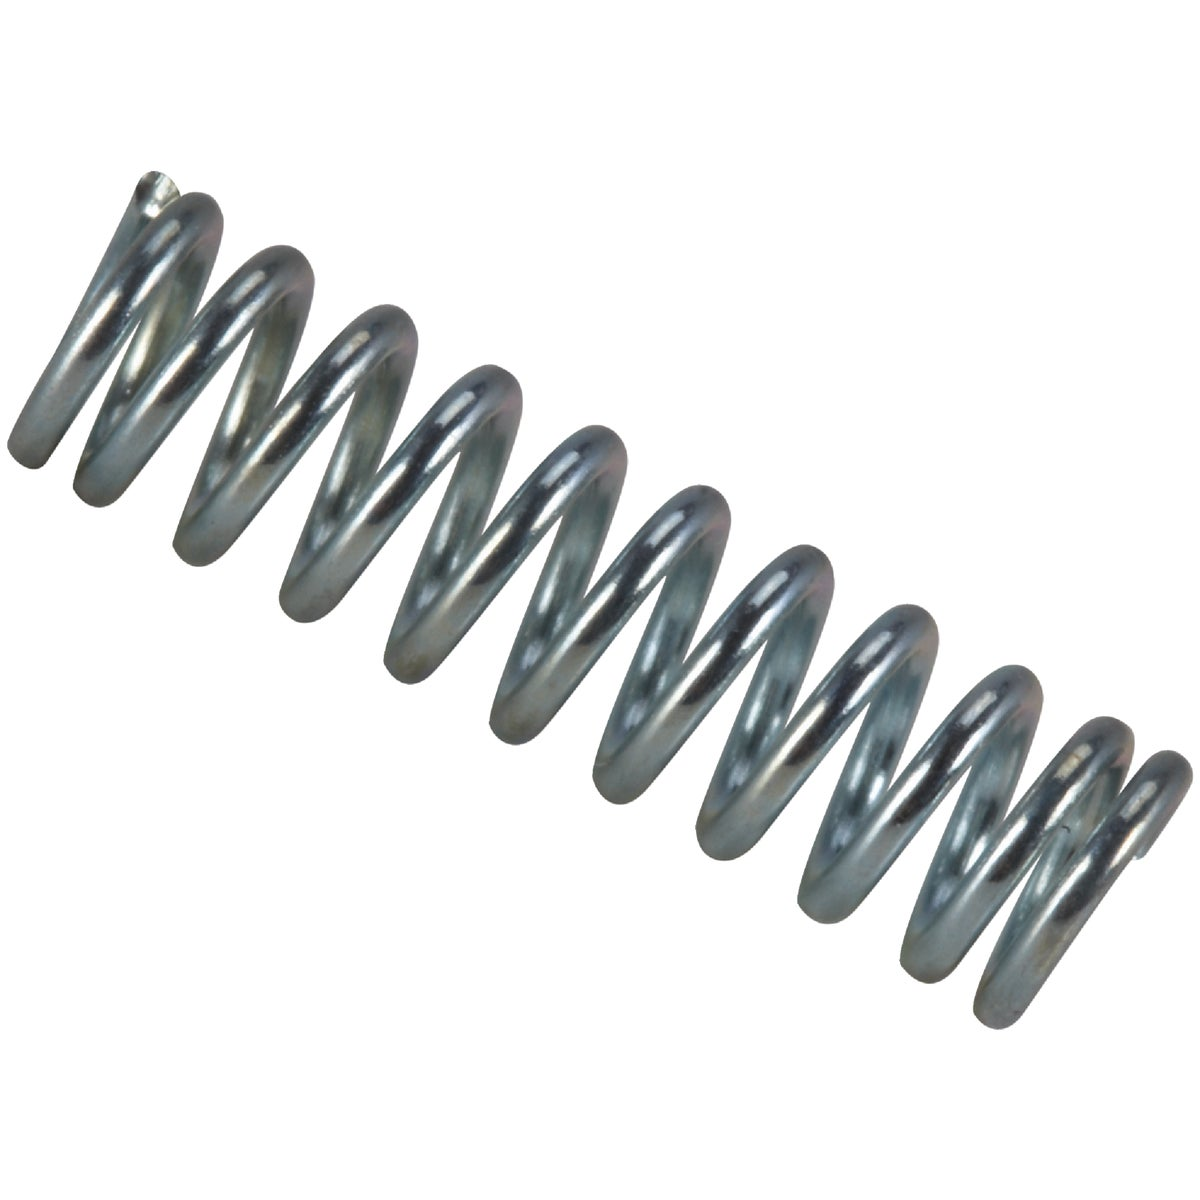 COMPRESSION SPRING - C-600 by Century Spring Corp